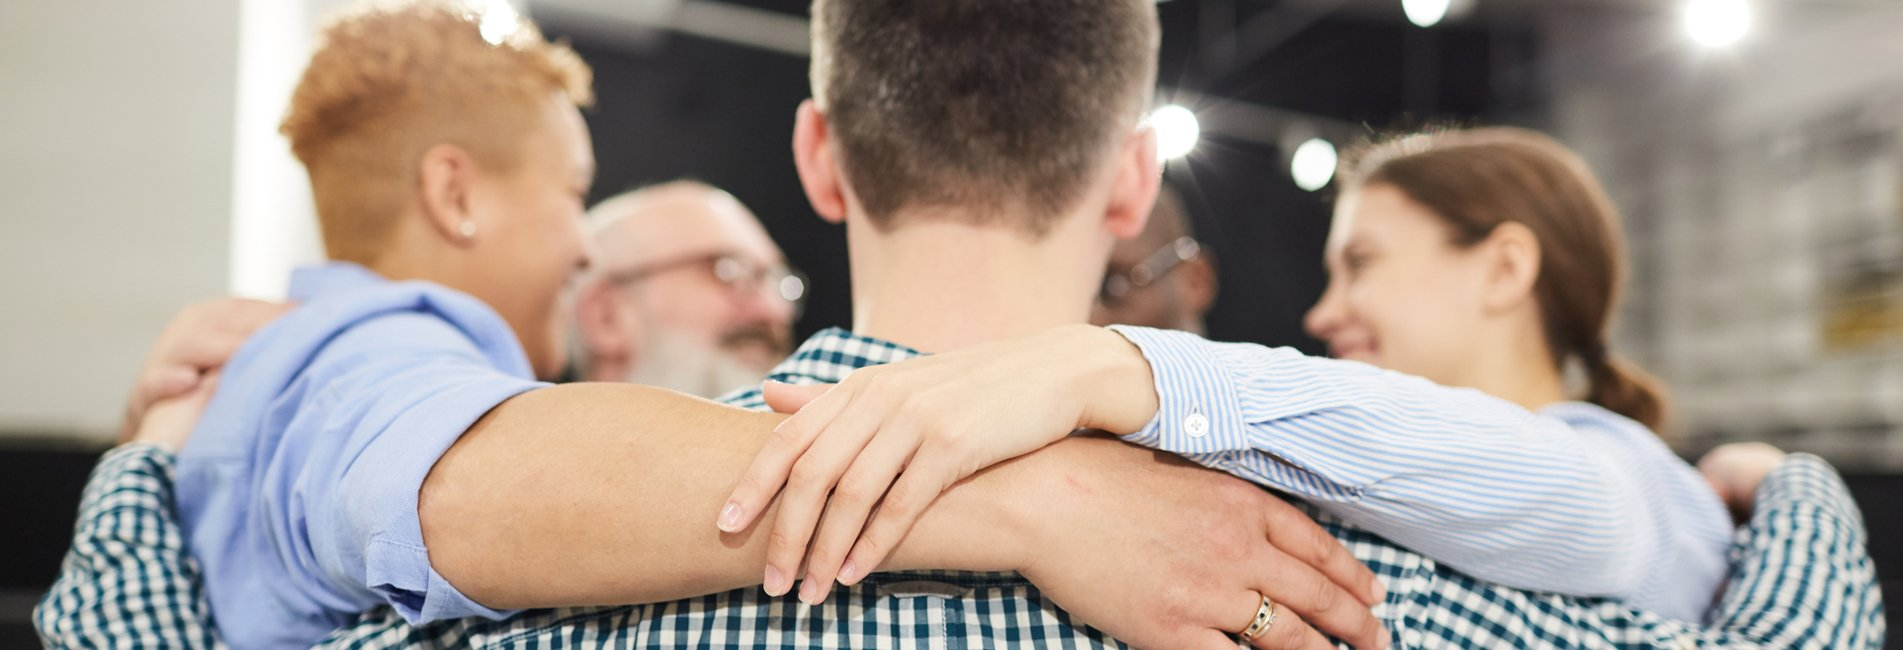 12-Step Programs Do Not Work, Or Do They? - Resurgence - A group of individuals meets for their 12-step programs after inpatient treatment as a form of addiction aftercare to help maintain their sobriety.